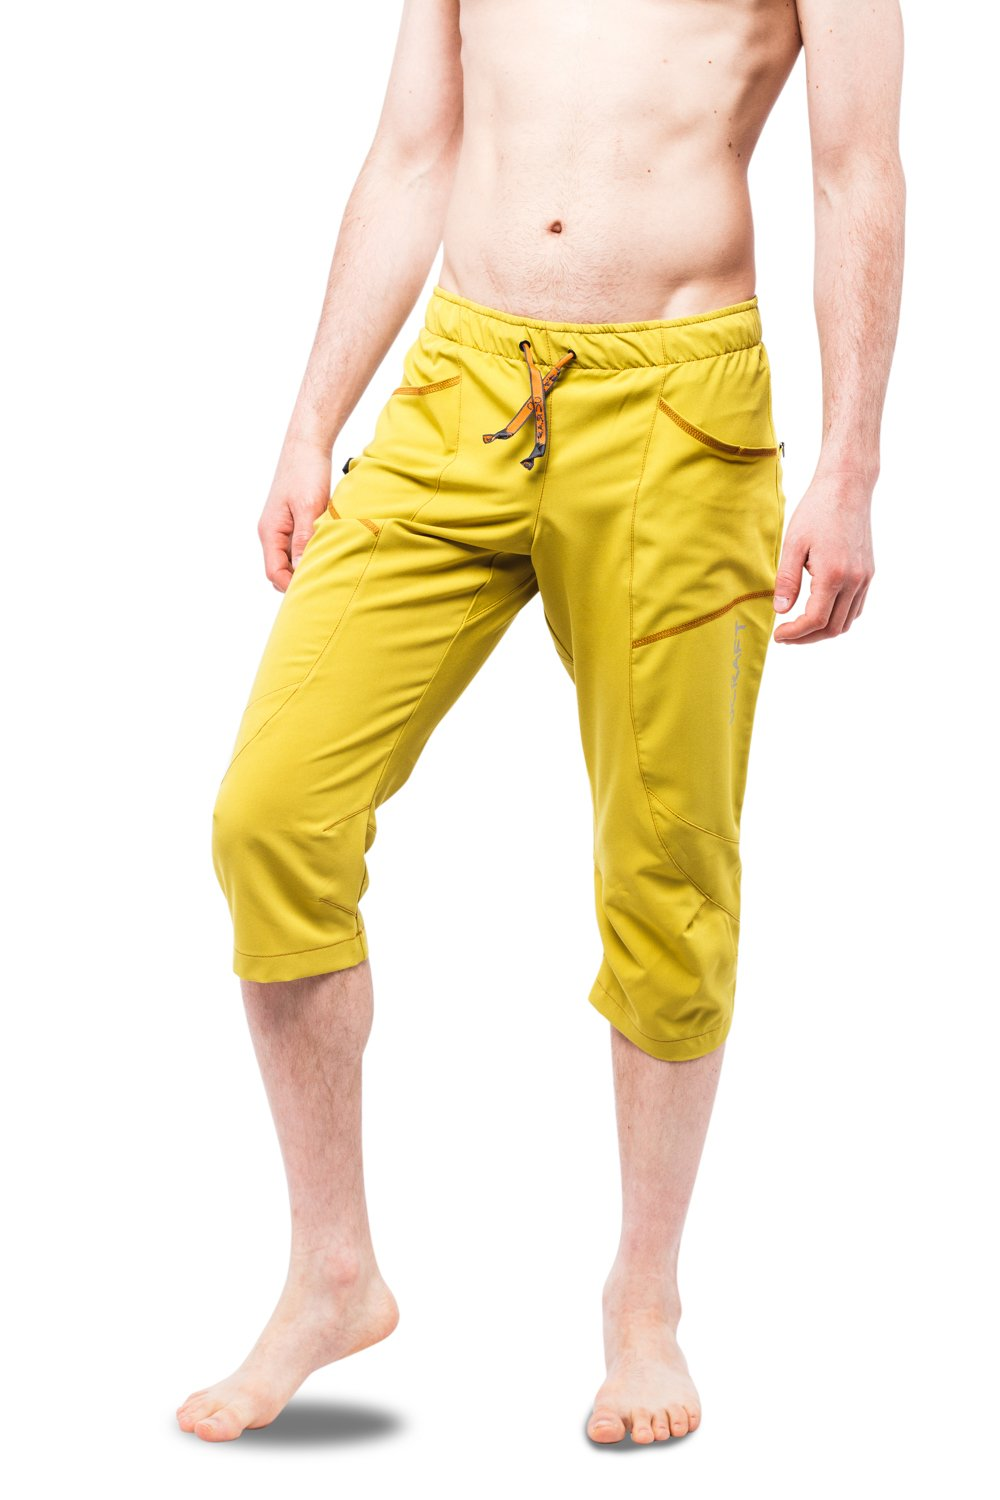 """Ucraft """"Xlite Rock Climbing Bouldering and Yoga Knickers ¾ Men's and Women's Capri Pants. Lightweight, Stretchy, Breathable"""